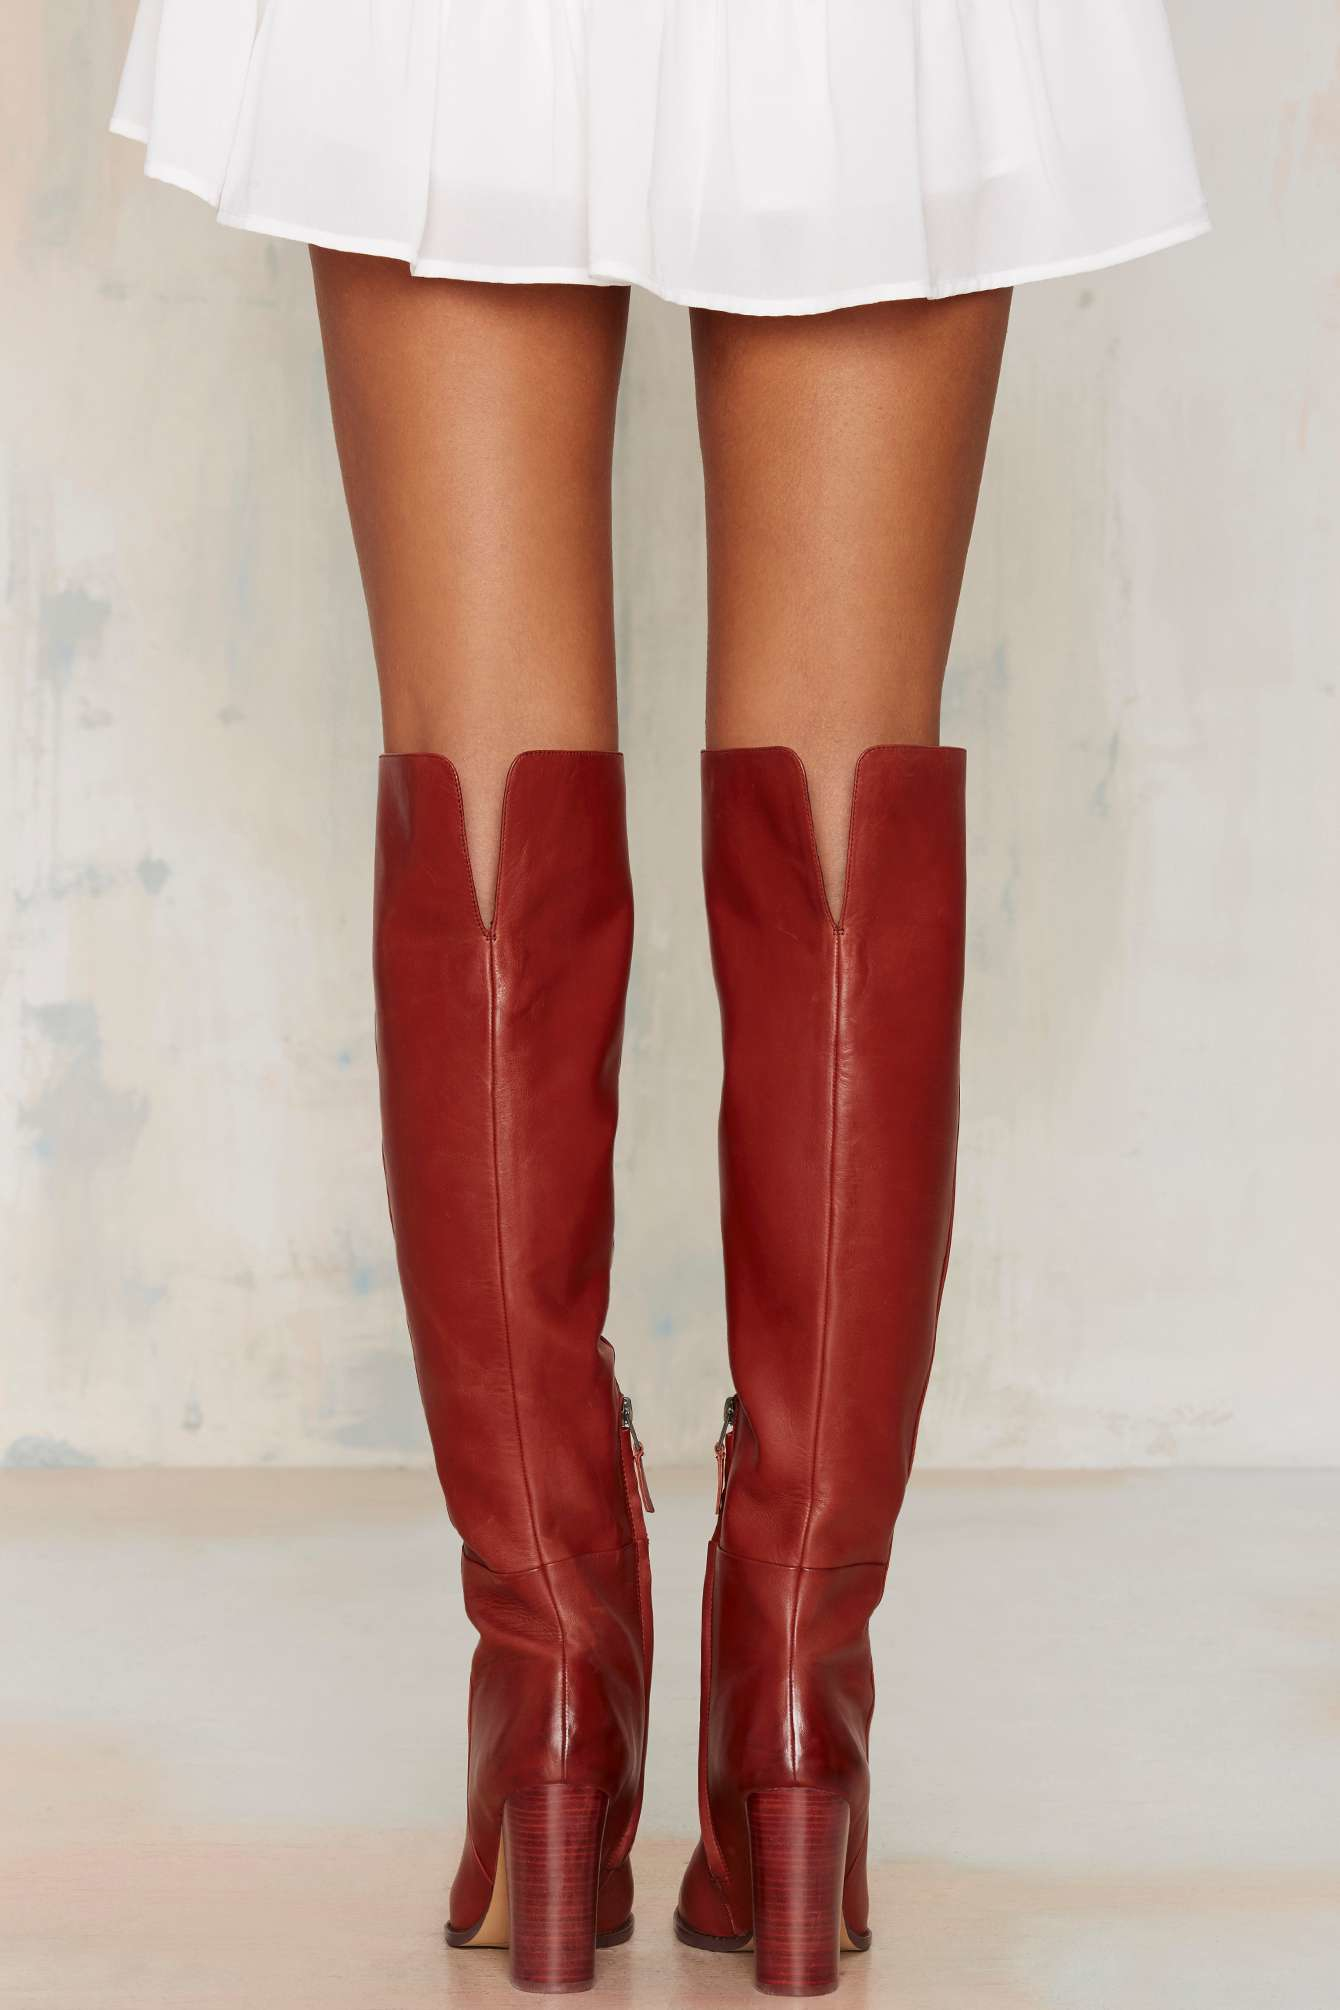 Lyst - Sam Edelman Rylan Knee-high Leather Boot in Red